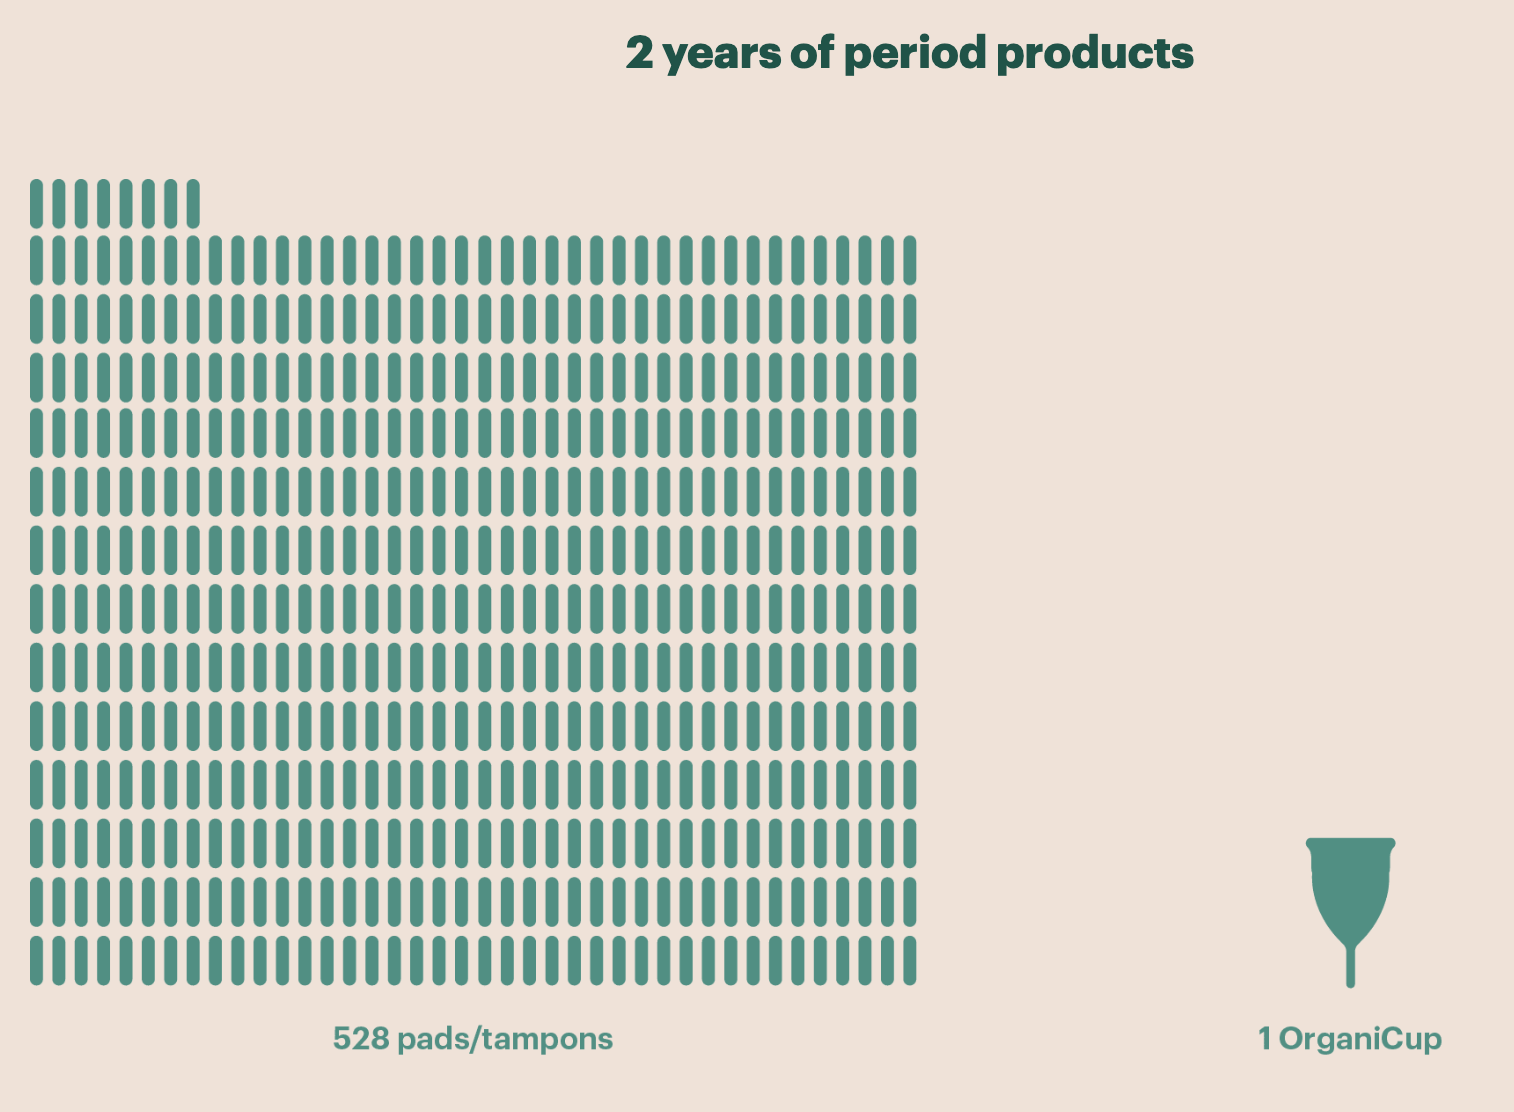 OrganiCup saves waste compared to tampons.